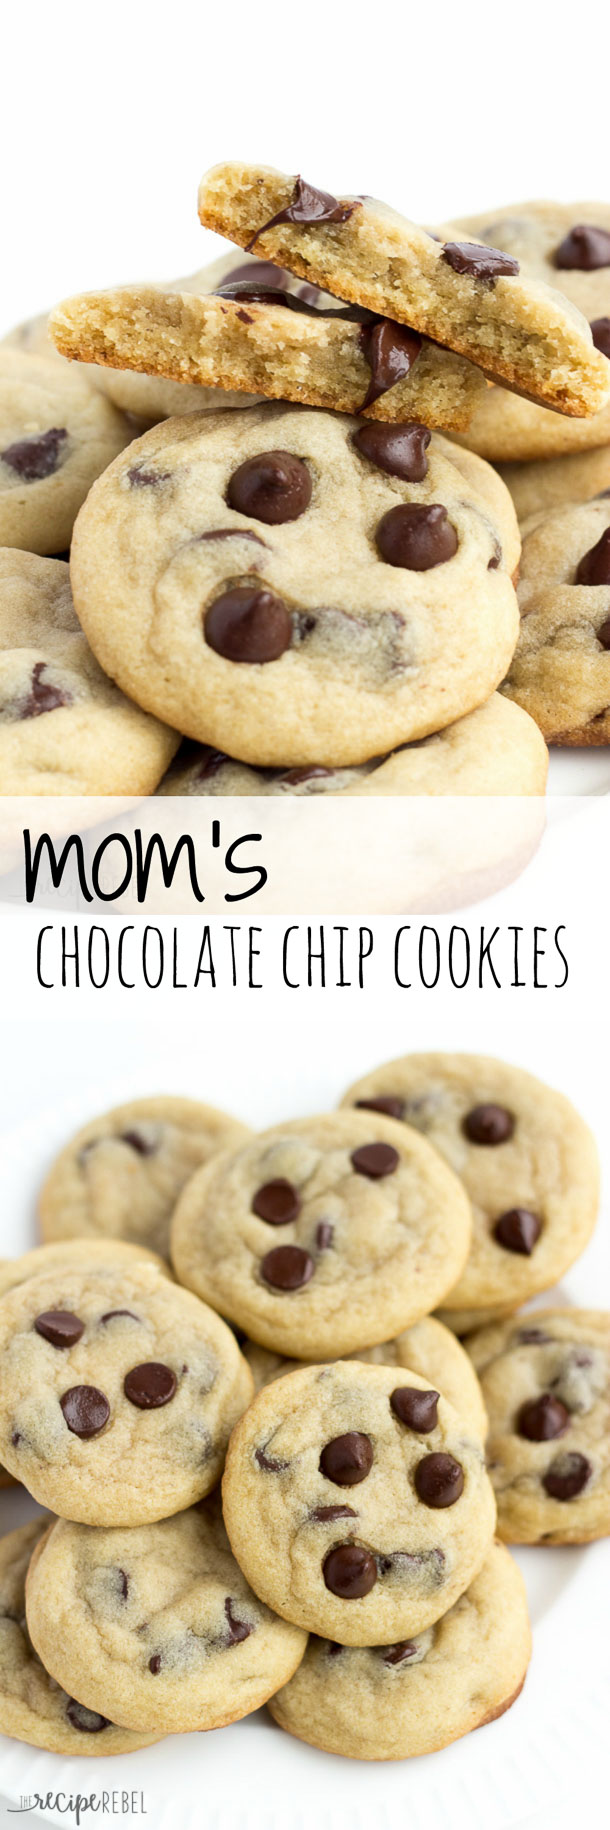 Mom's Chocolate Chip Cookies: Soft, chewy chocolate chip cookies that are never fluffy or cakey. My mom's recipe that she's been making ever since I was a little girl! You know they've got to be good